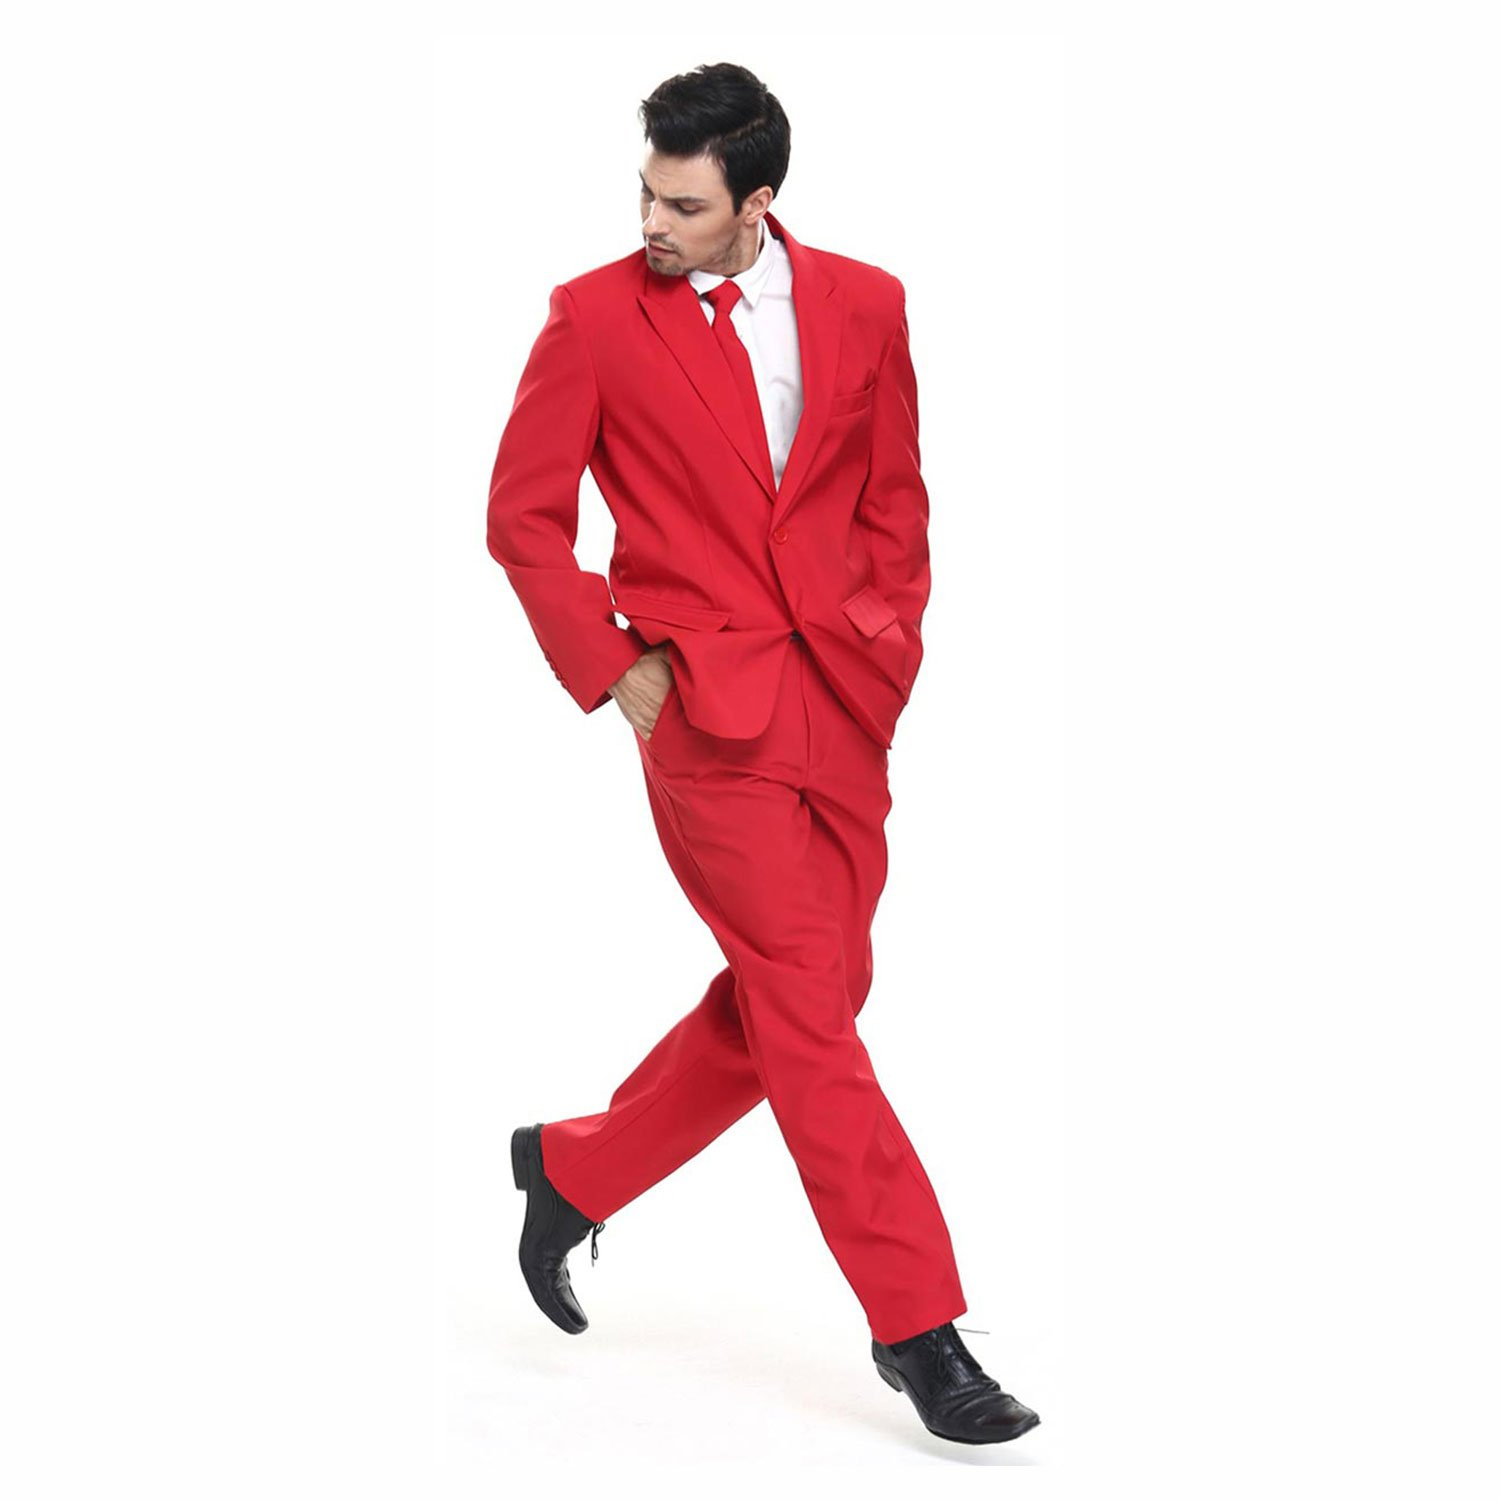 Mens Ugly Christmas Party Suit Solid Red | You Look Ugly Today